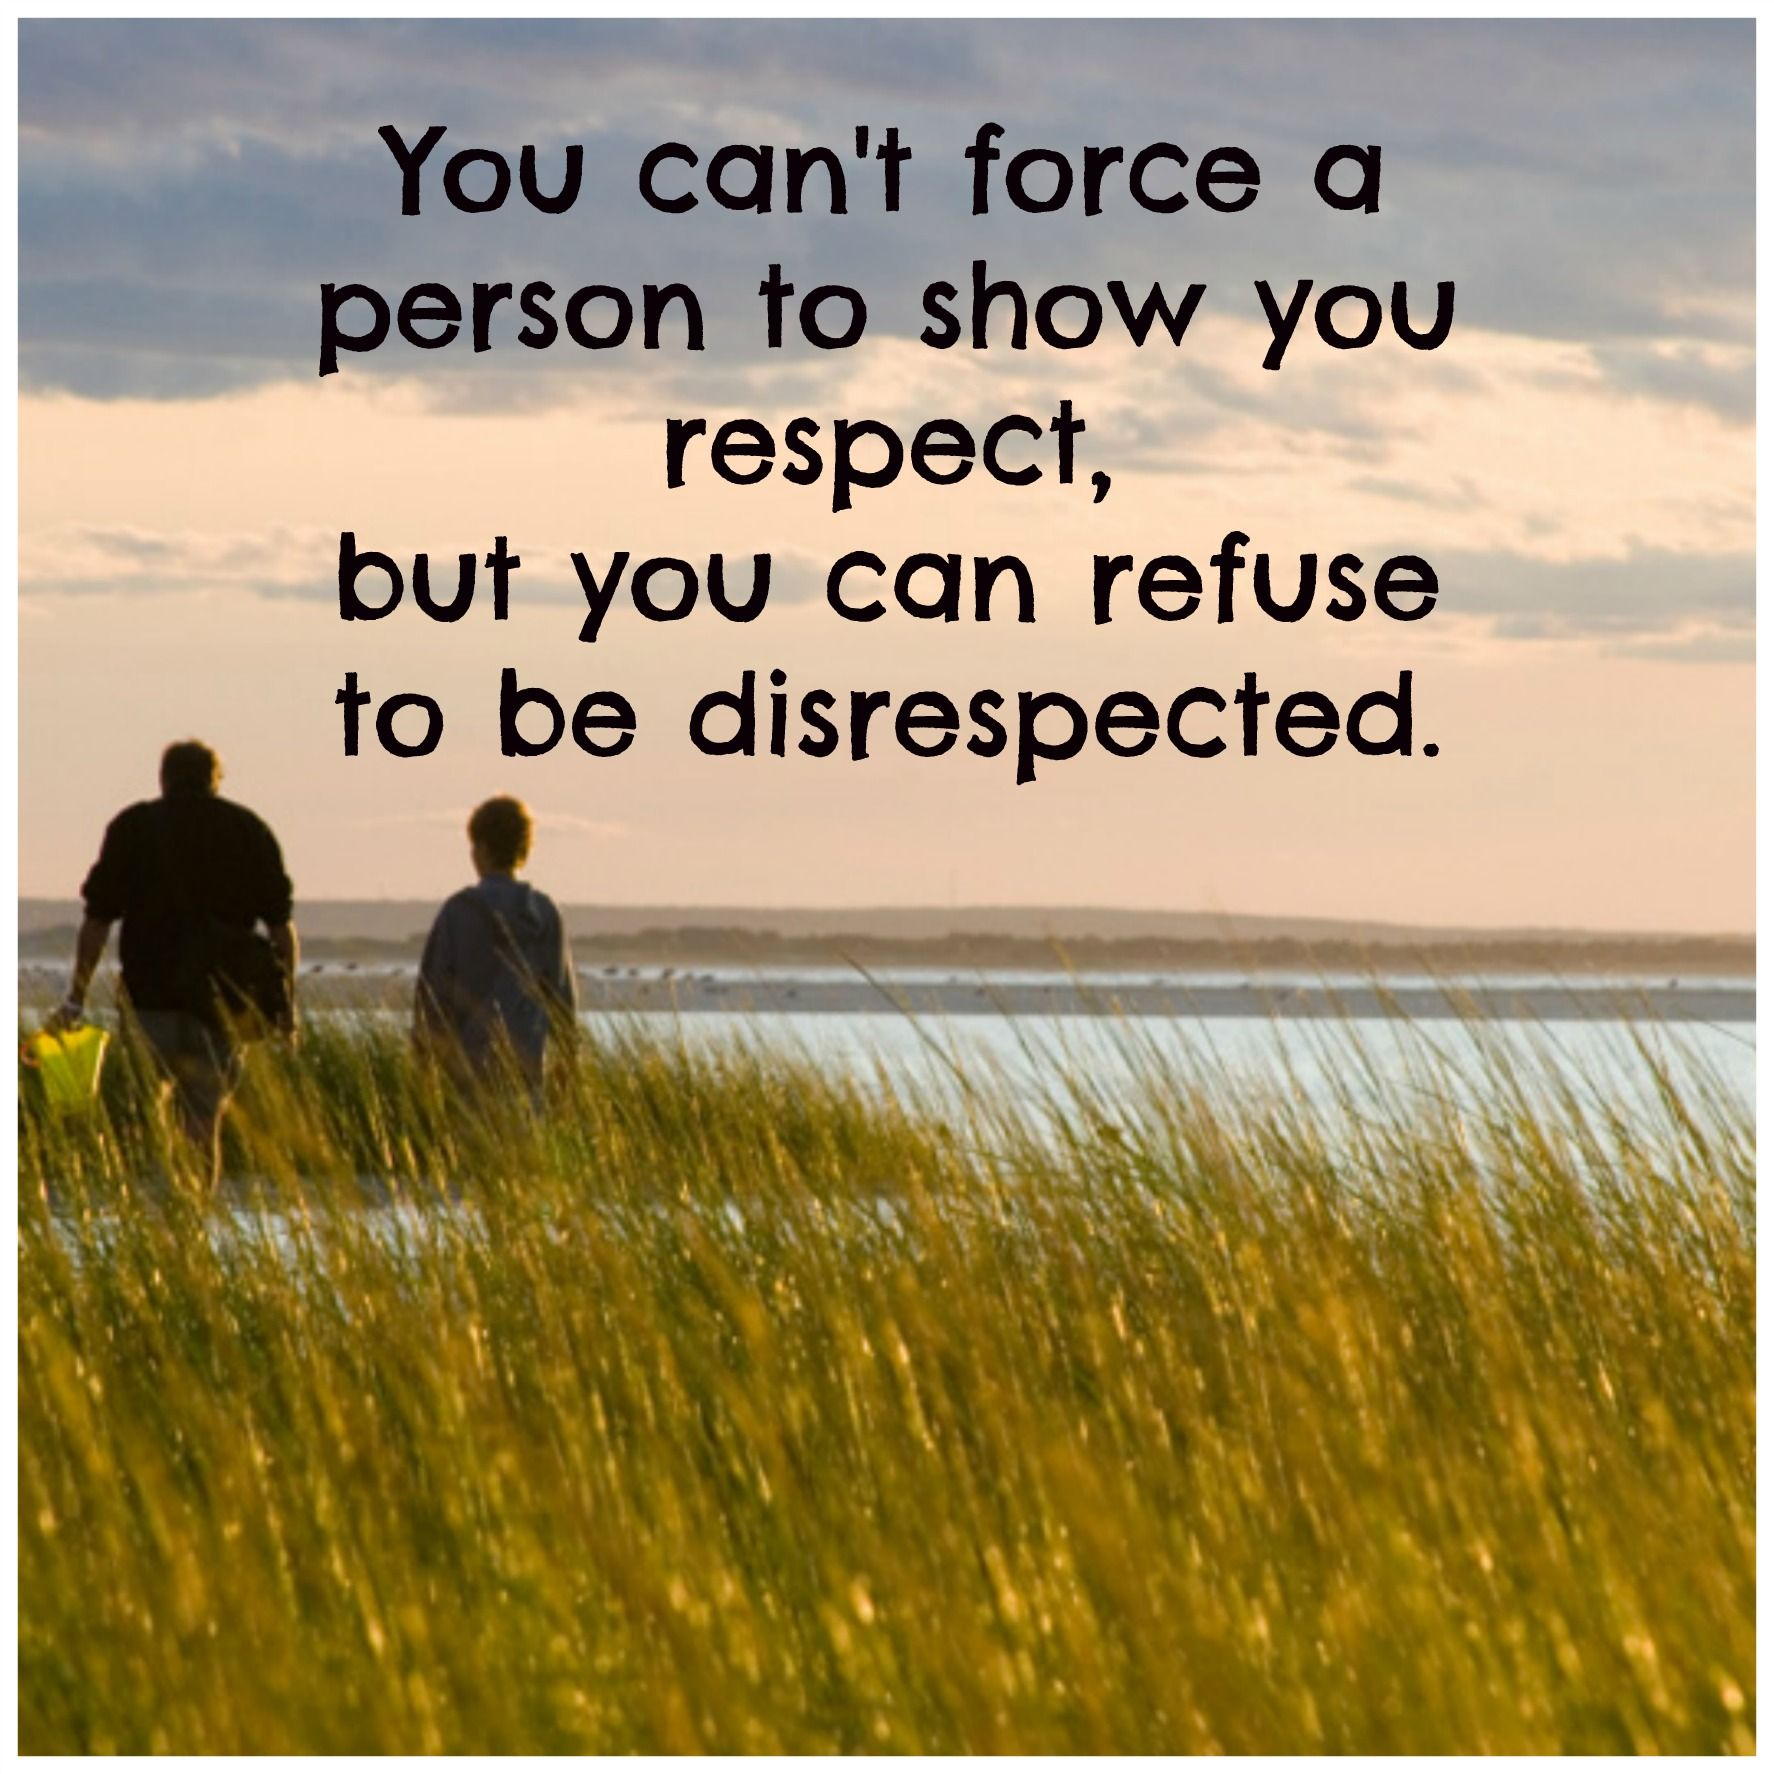 Quotes Related To Respect: Disrespect Quotes On Pinterest